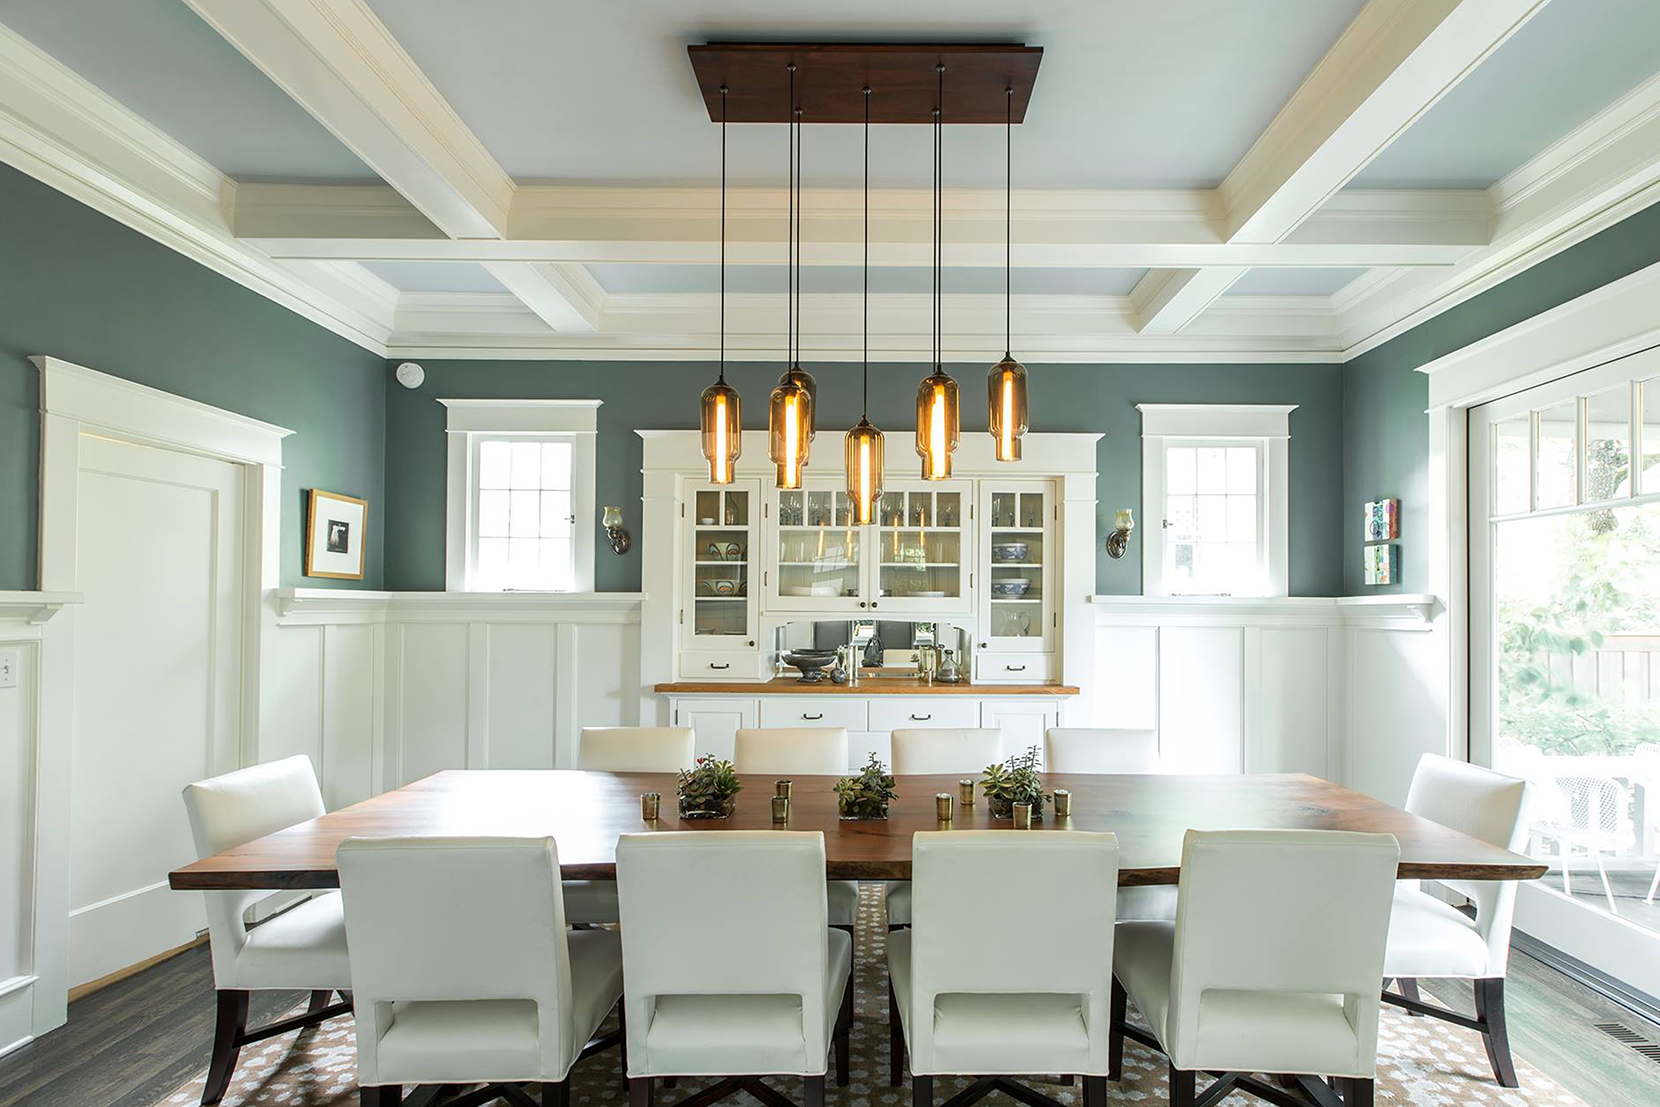 Lighting-Project-Pages_0006s_0007_Multi-Pendant-Modern-Dining-Room-Chandelier.png